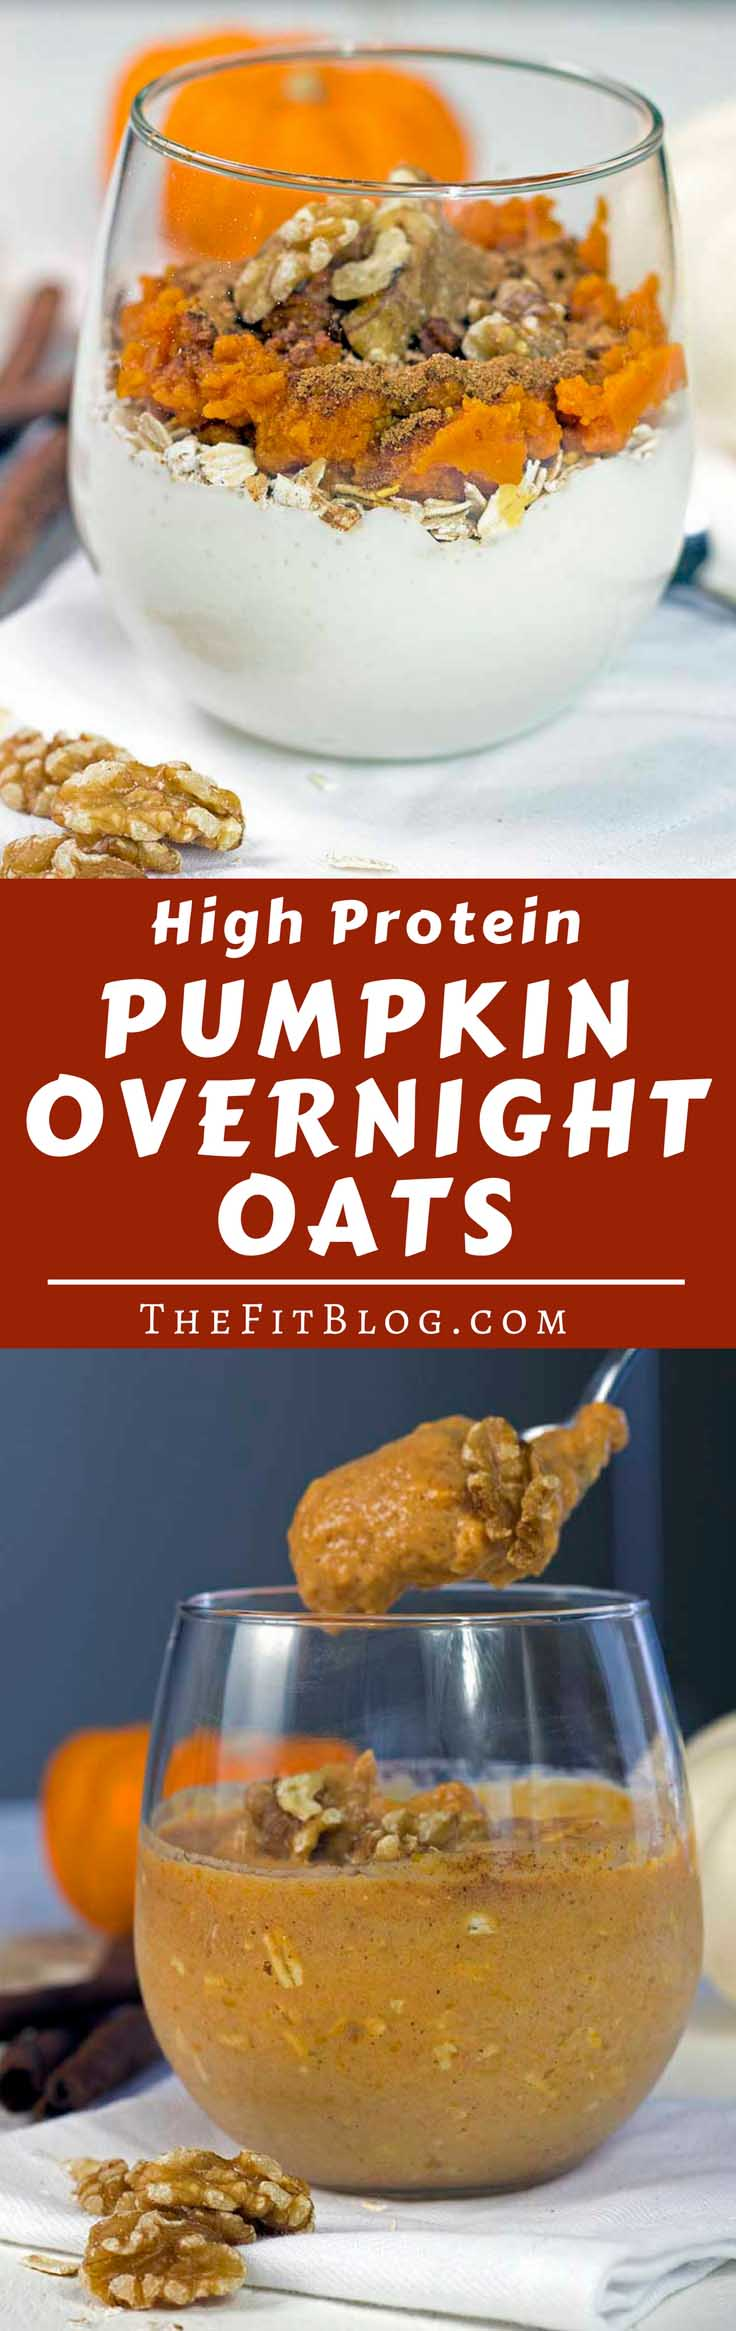 These Pumpkin Overnight Oats are a serving of yummy pumpkin and cinnamon goodness with enough protein to qualify as a healthy fitness breakfast or snack. #healthyeating #healthyrecipes #diabetesdiet #diabetesrecipes #diabeticdiet #diabeticfood #diabeticrecipe #diabeticfriendly #breakfast #oats #pumpkin